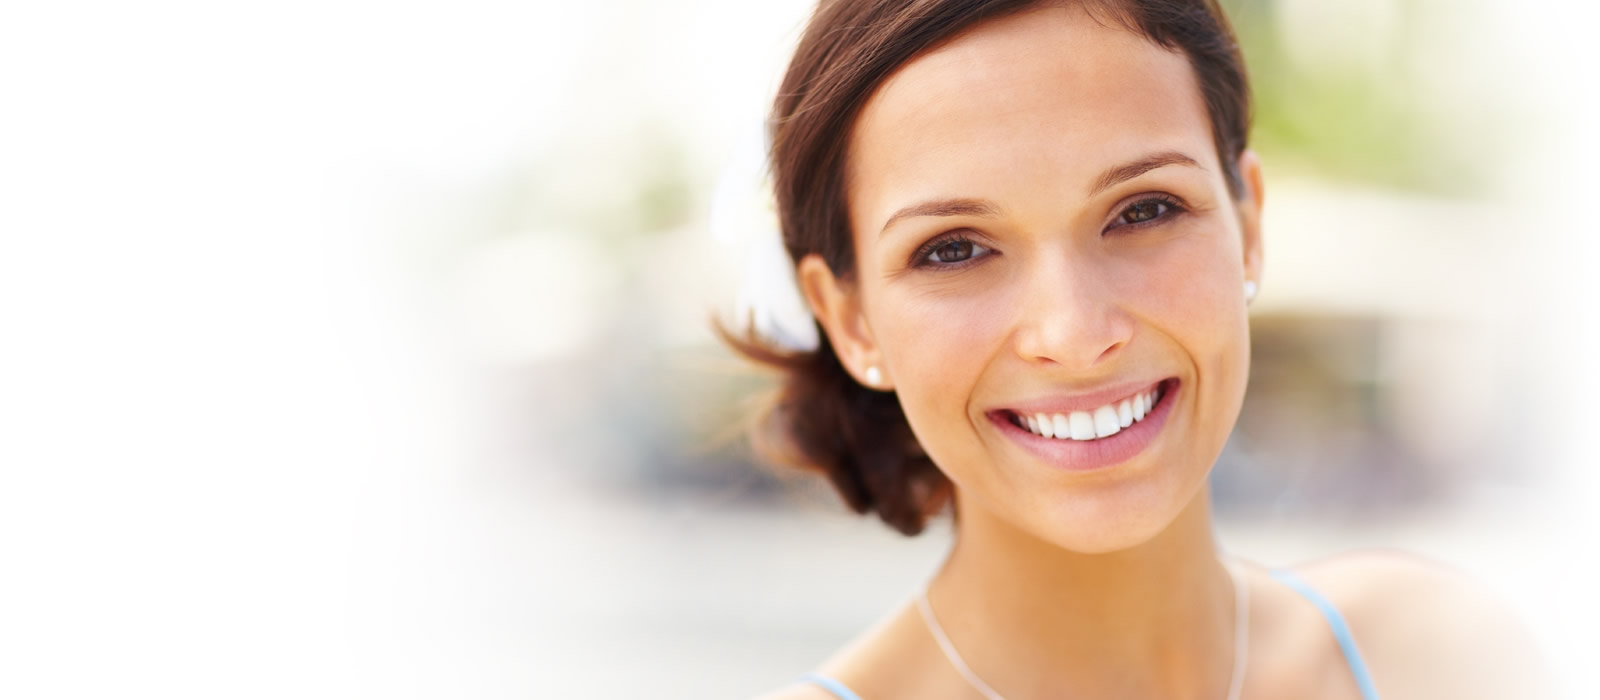 Remove wrinkles with botox treatments in Stockport